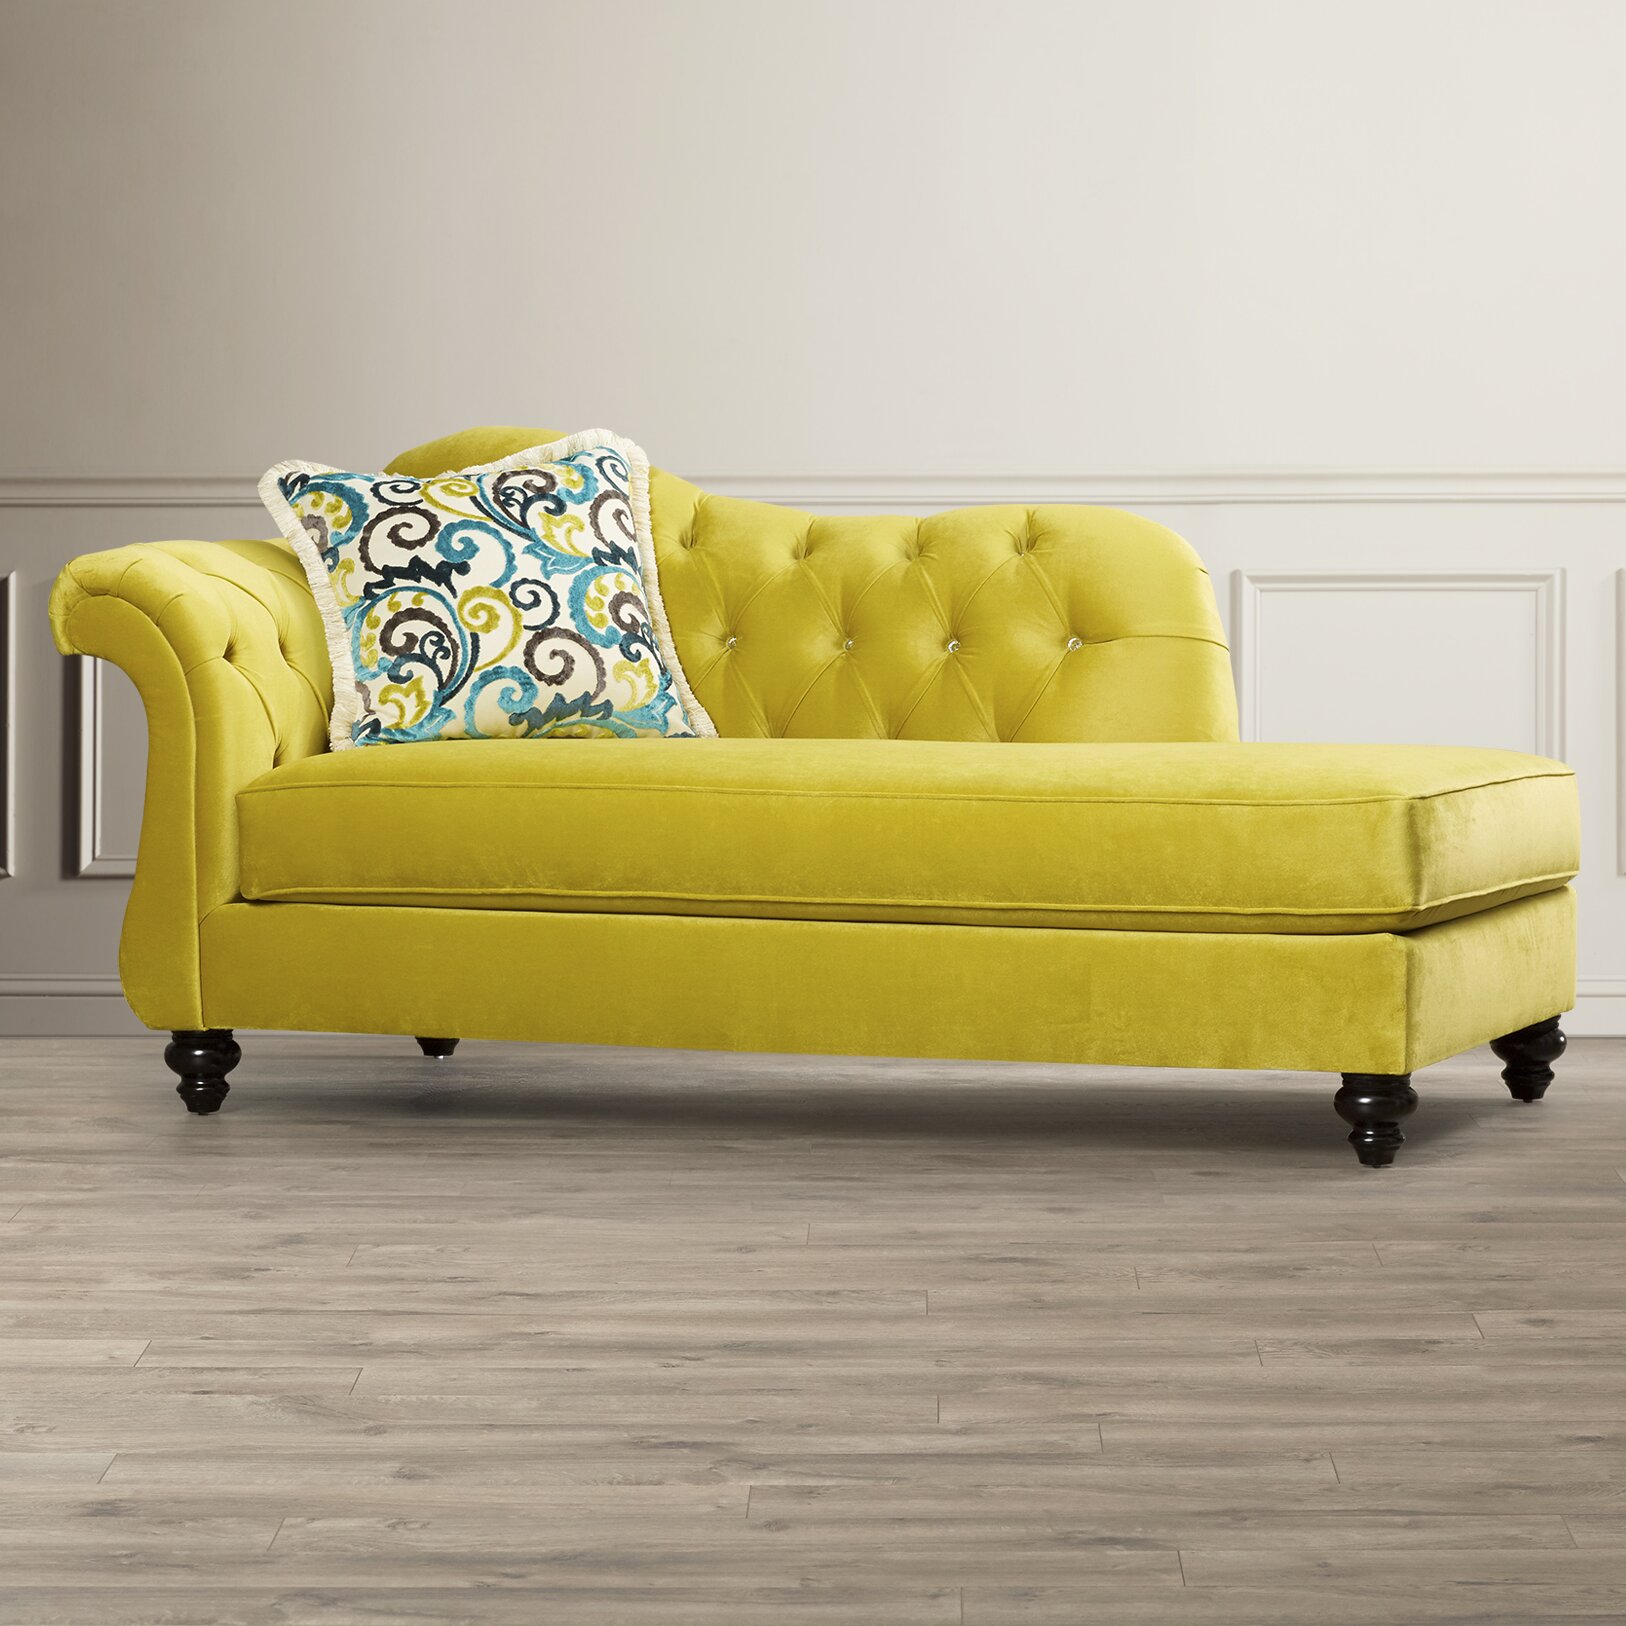 Inflatable Sofa Malta: House Of Hampton Oliver Chaise Lounge & Reviews